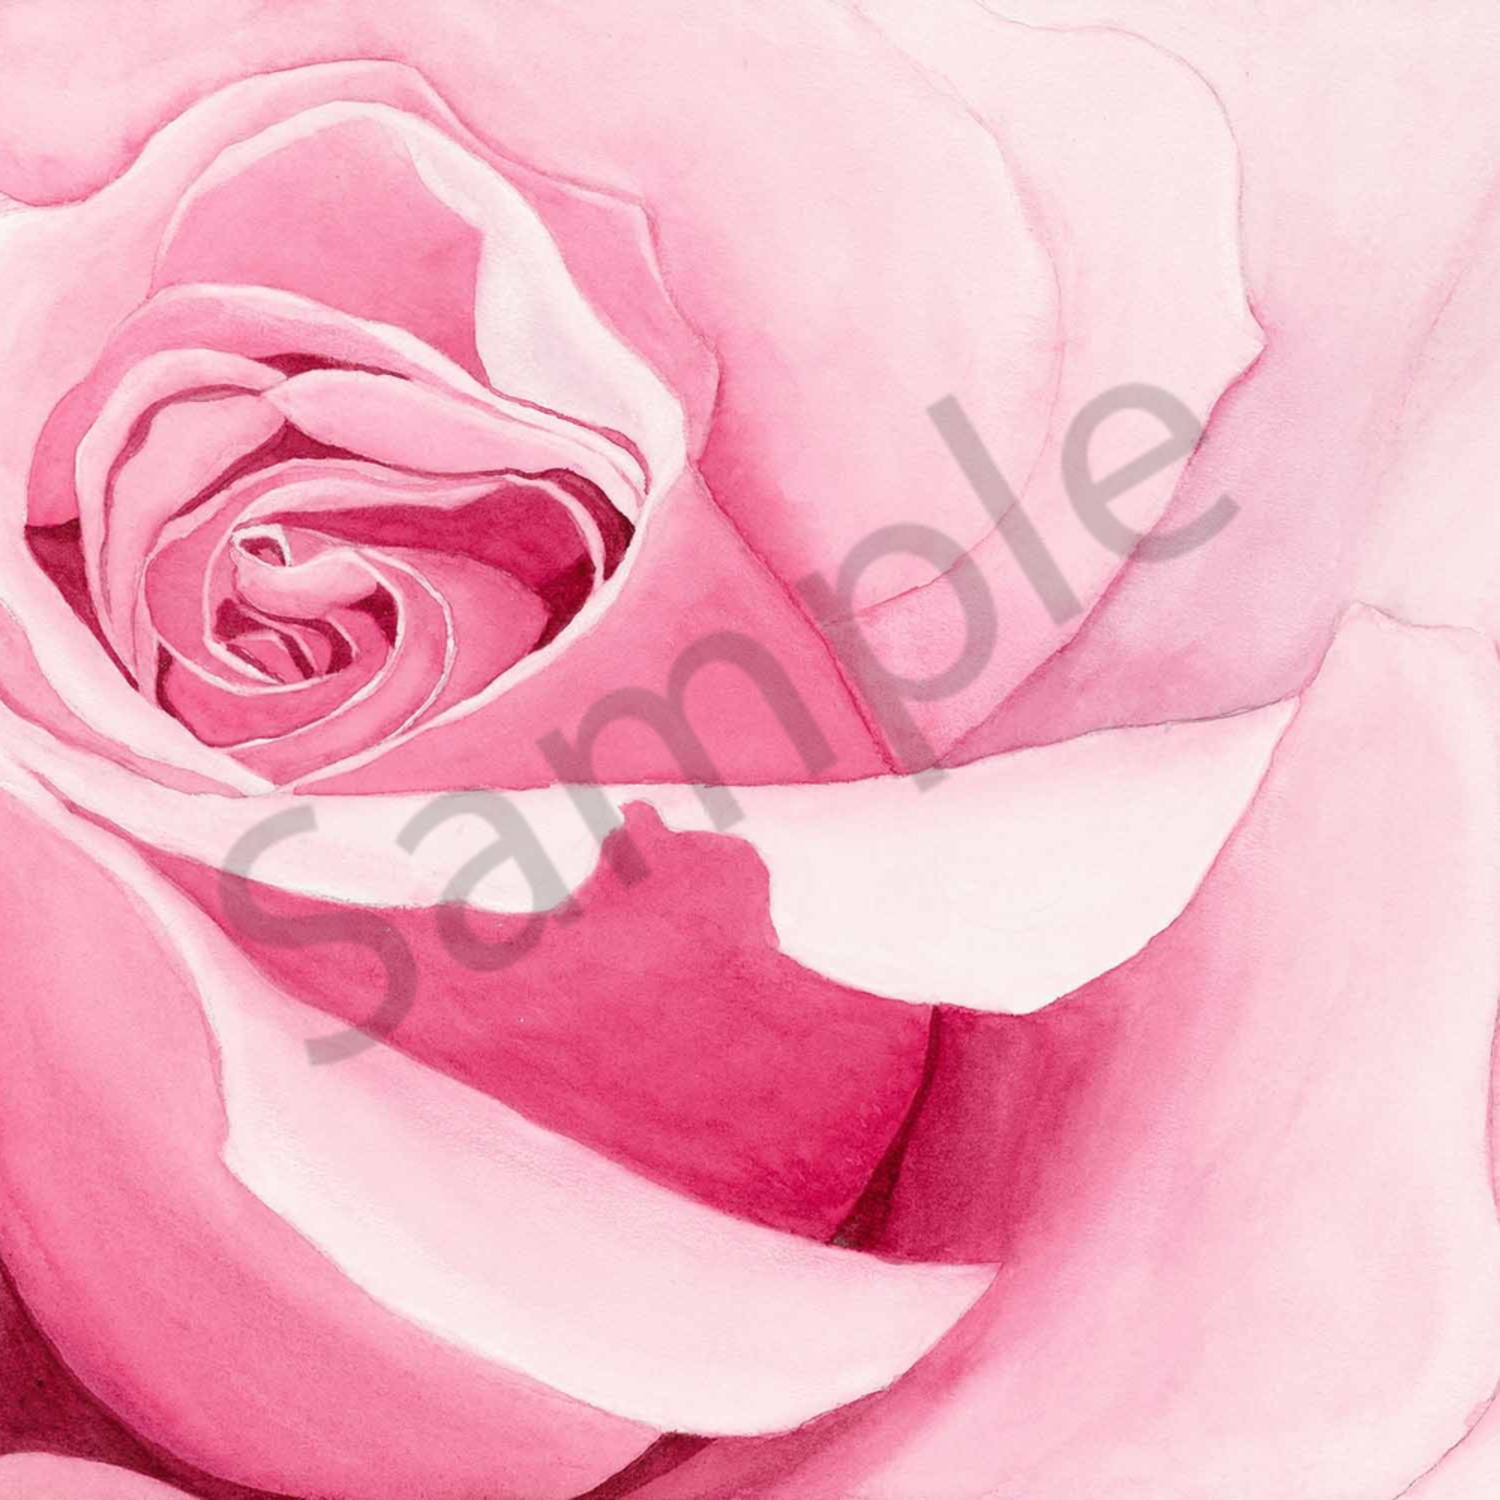 Janelle anderson 005 love of roses 2000px ibtsae